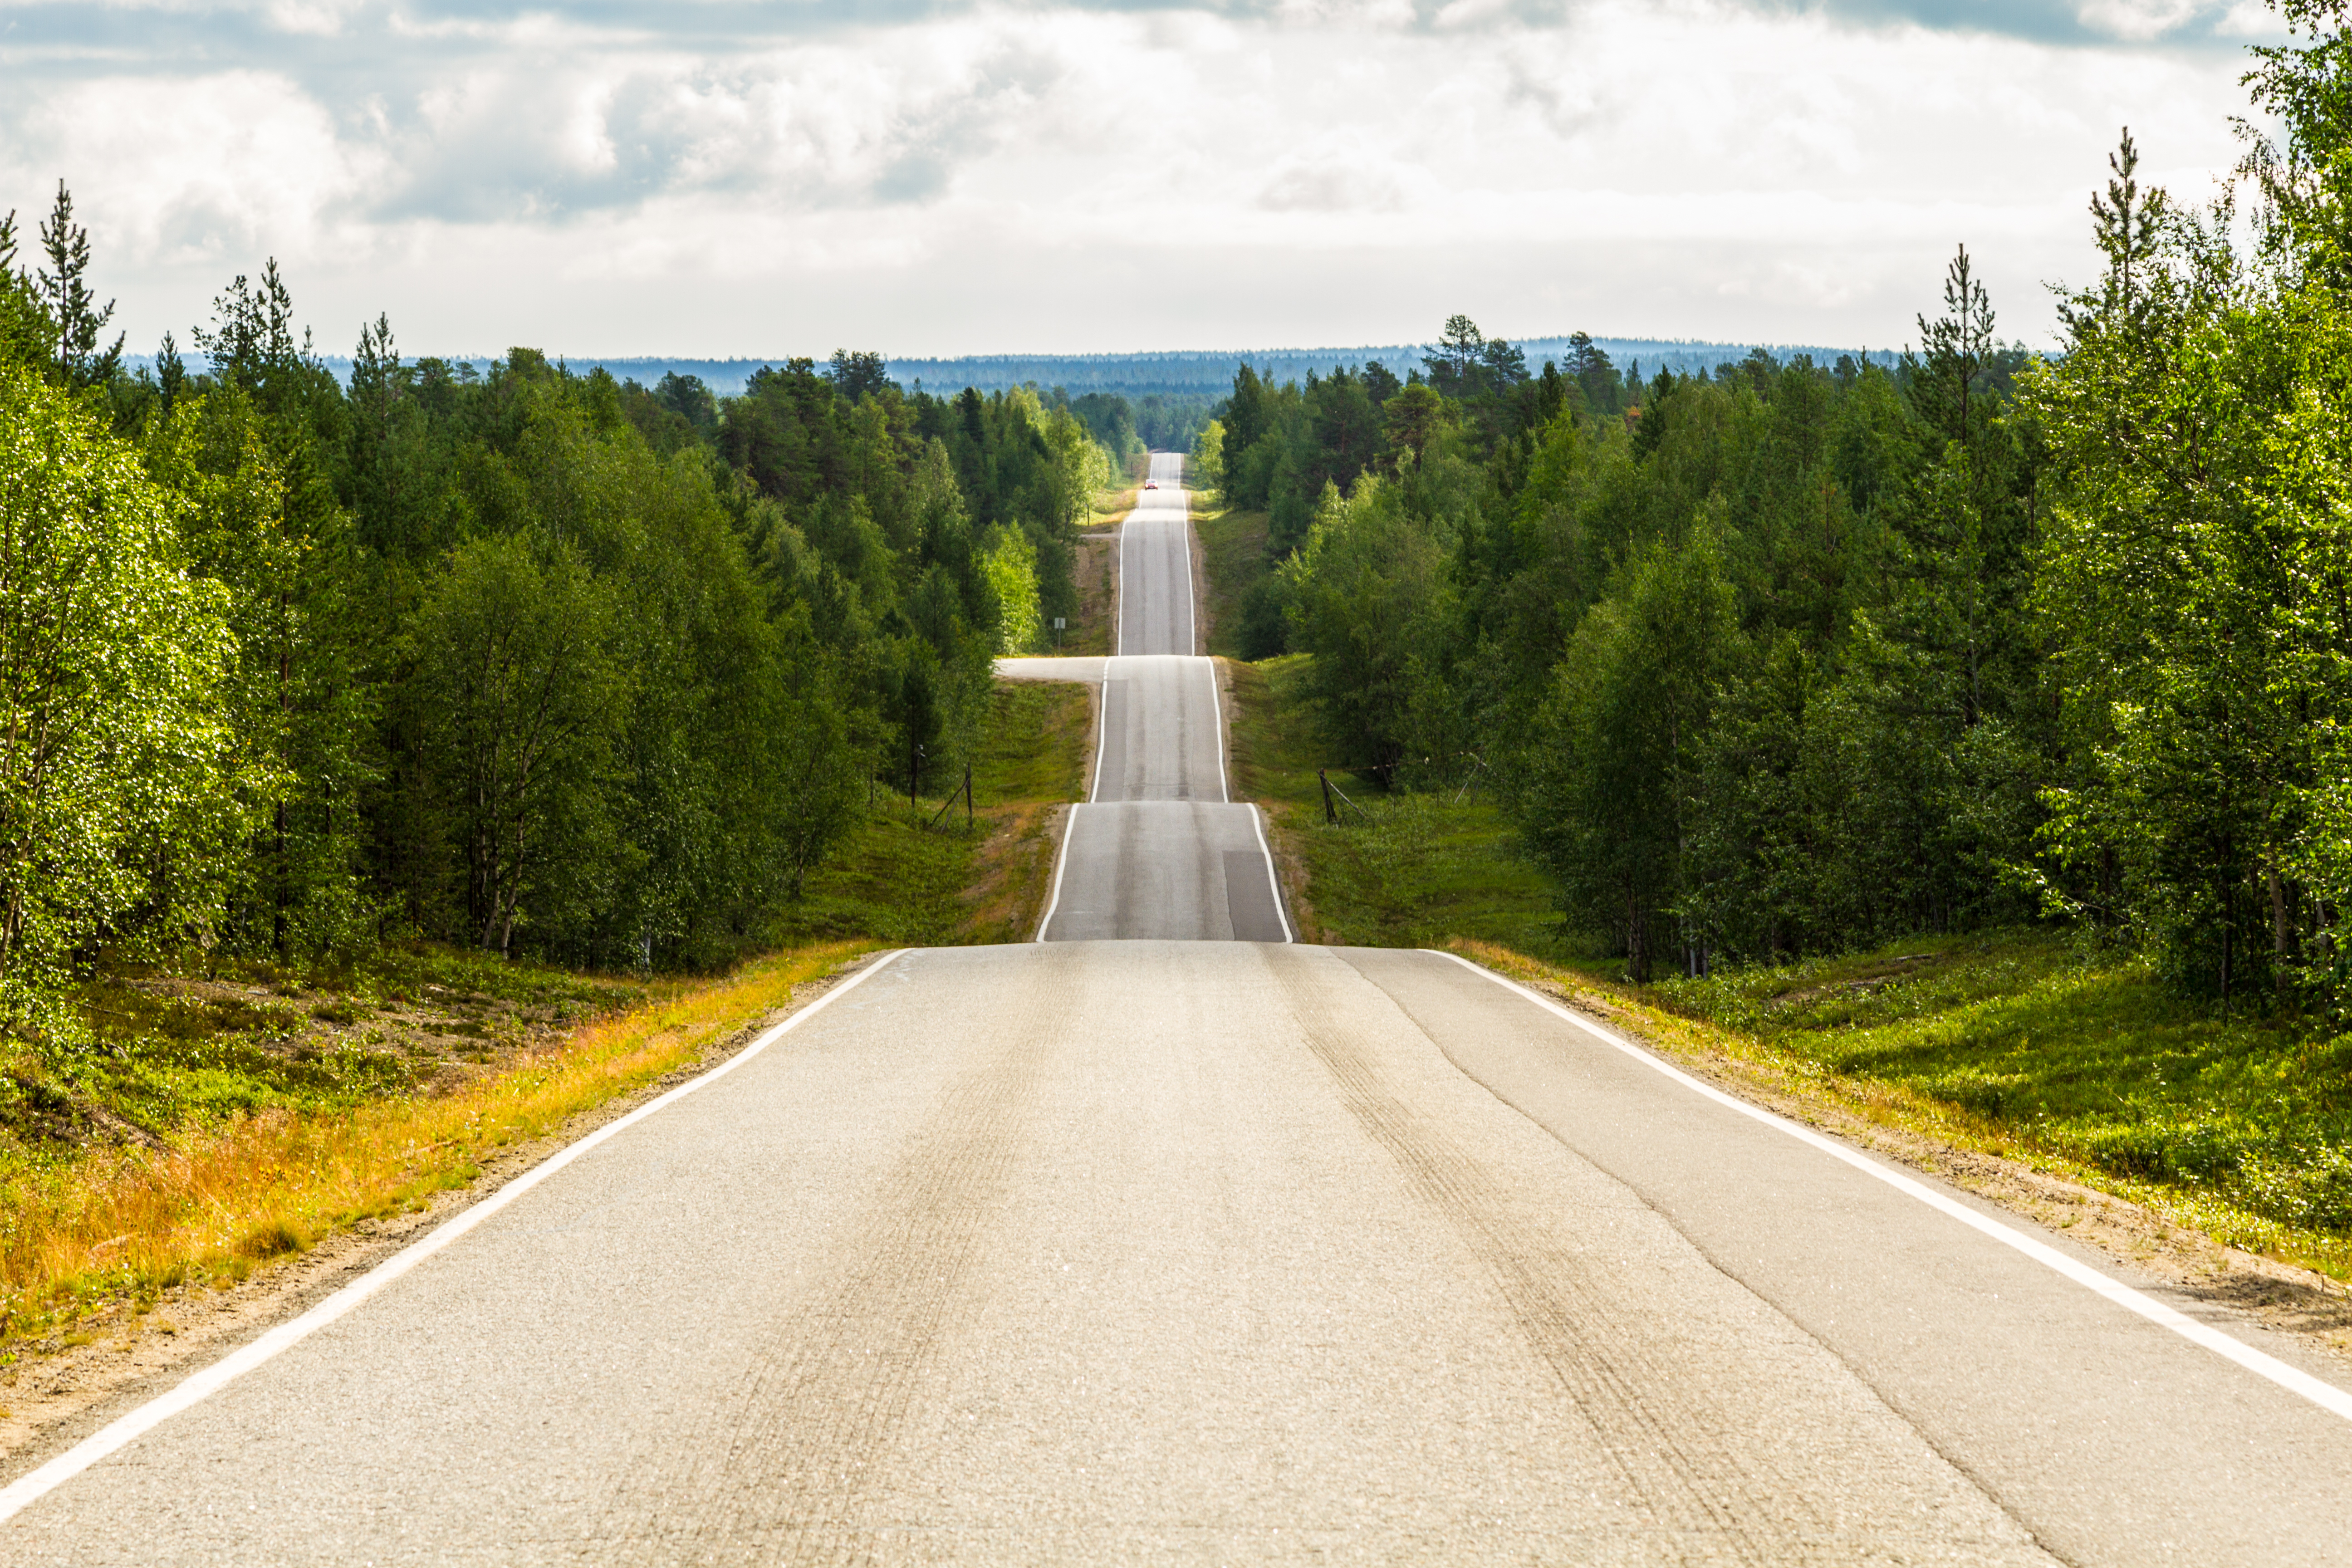 Discover the World's Greatest Rides with TomTom Road Trips (Photo: Business Wire)